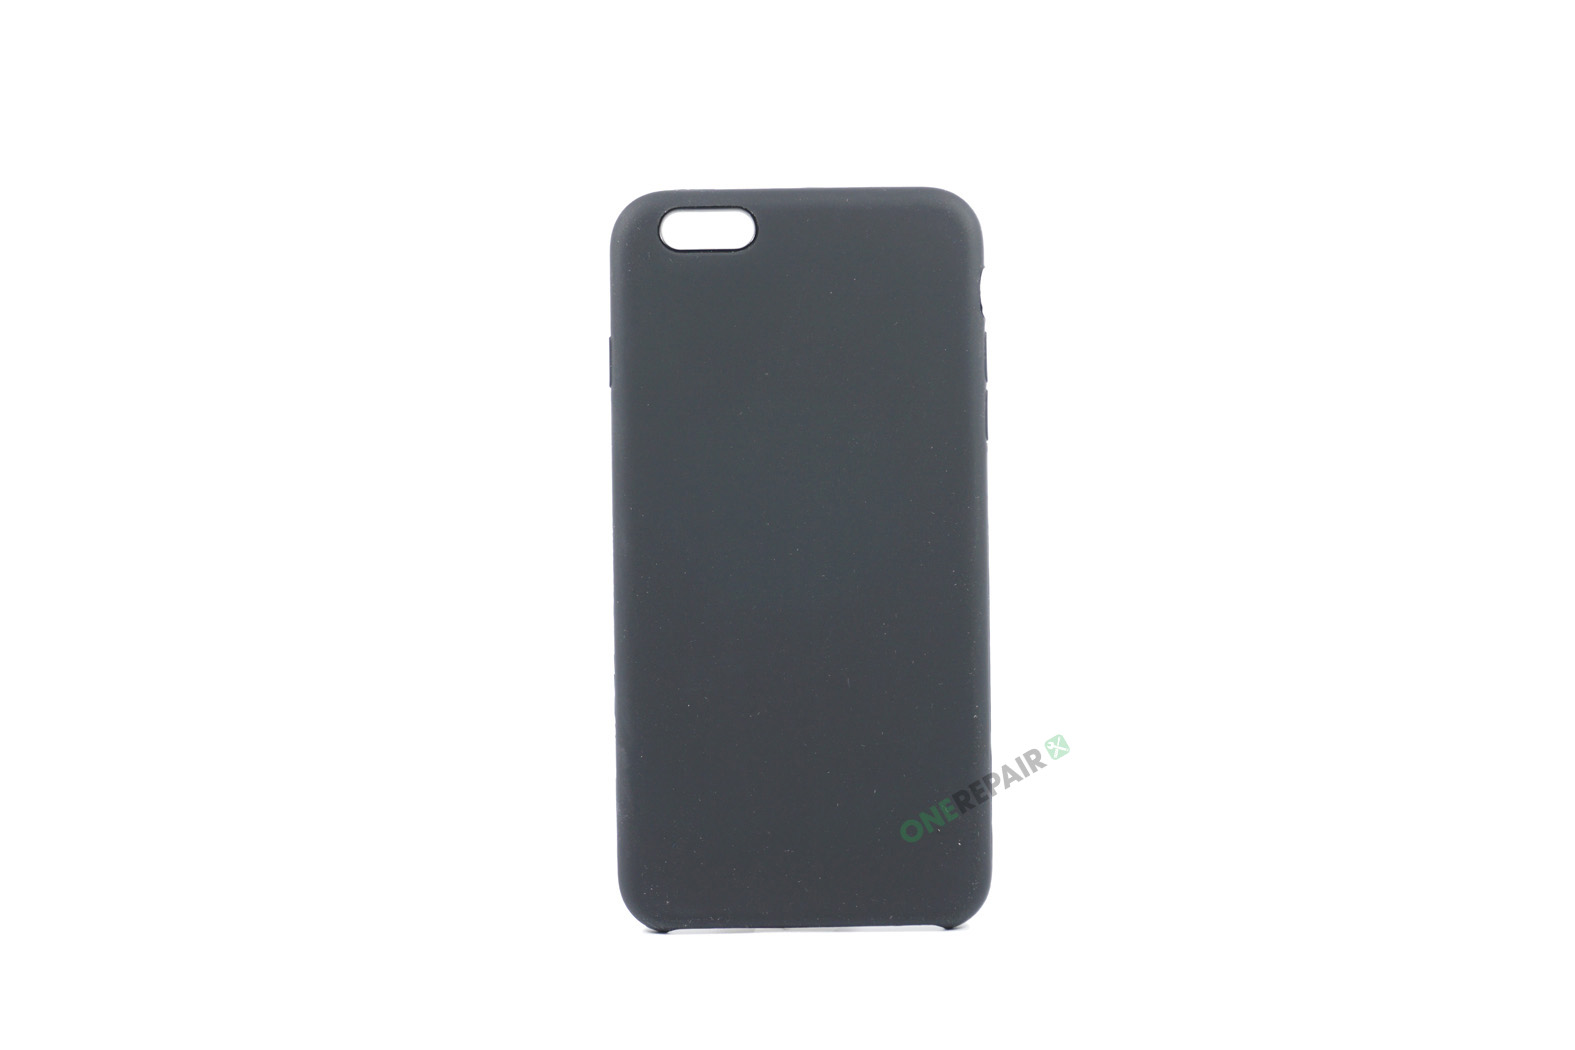 351431_iPhone_6+_6S+_Plus_Silikone_Cover_Sort_OneRepair_WM_00001